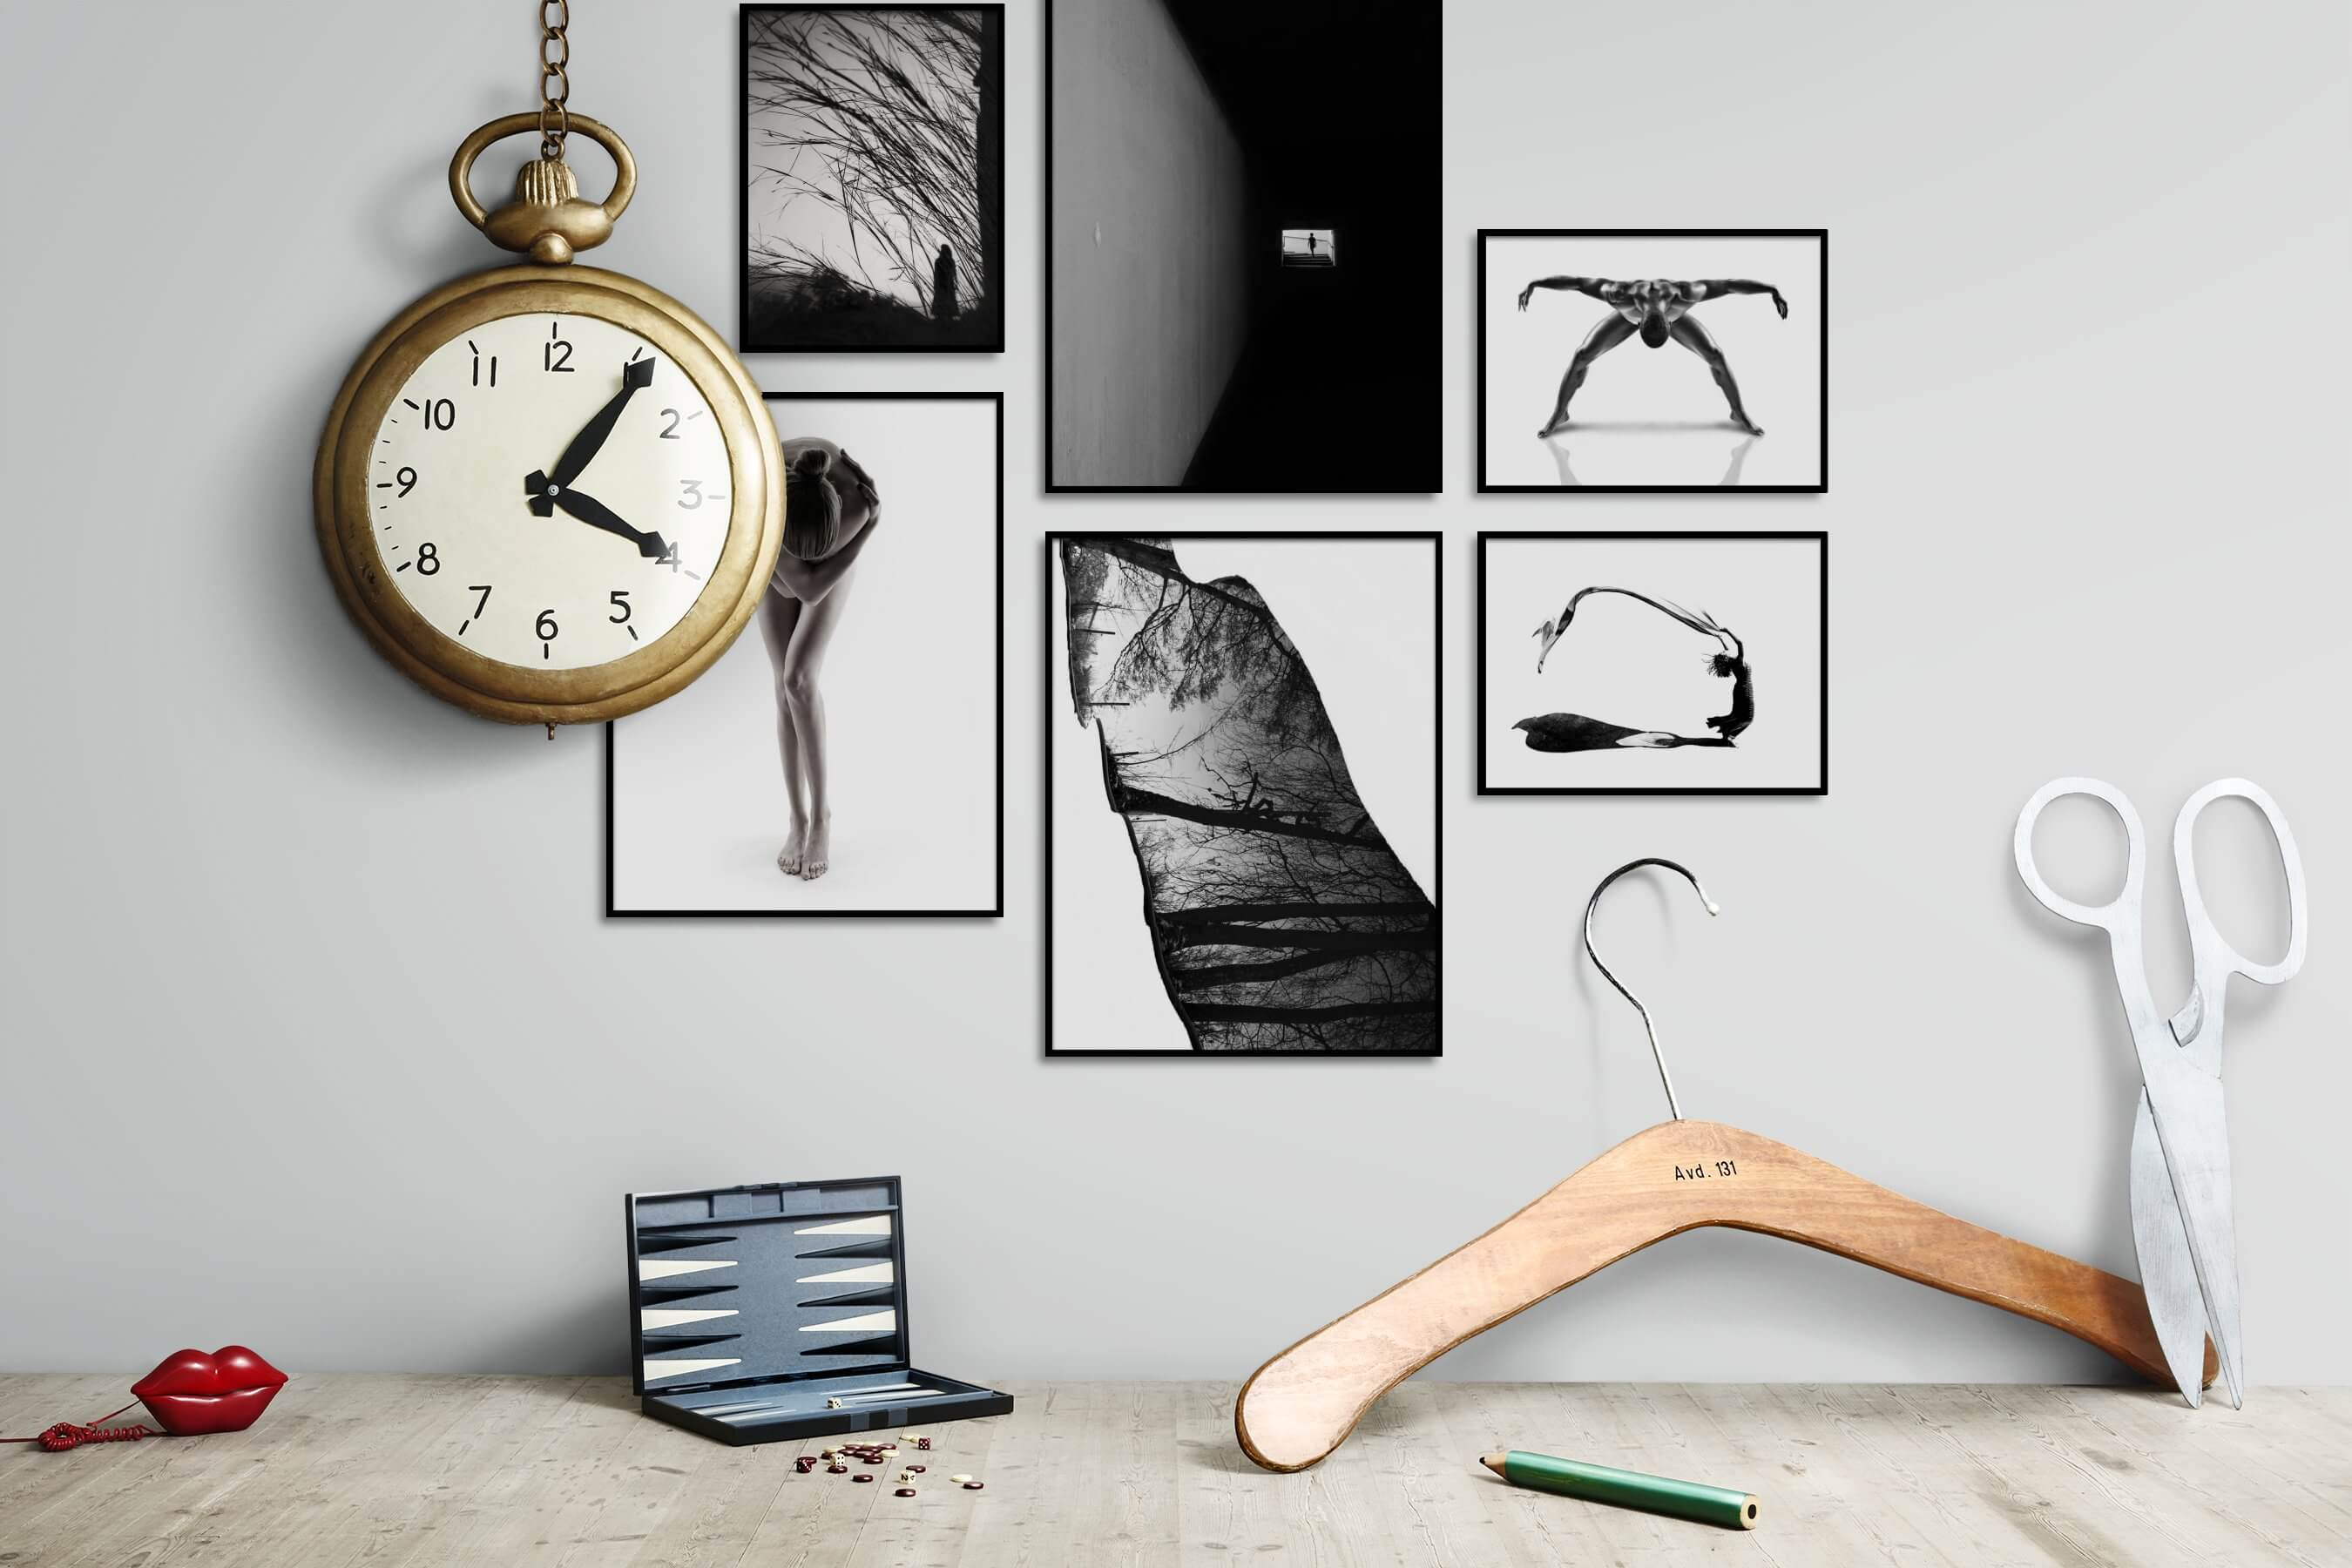 Gallery wall idea with six framed pictures arranged on a wall depicting Artsy, Black & White, For the Minimalist, Fashion & Beauty, Bright Tones, For the Moderate, and Nature